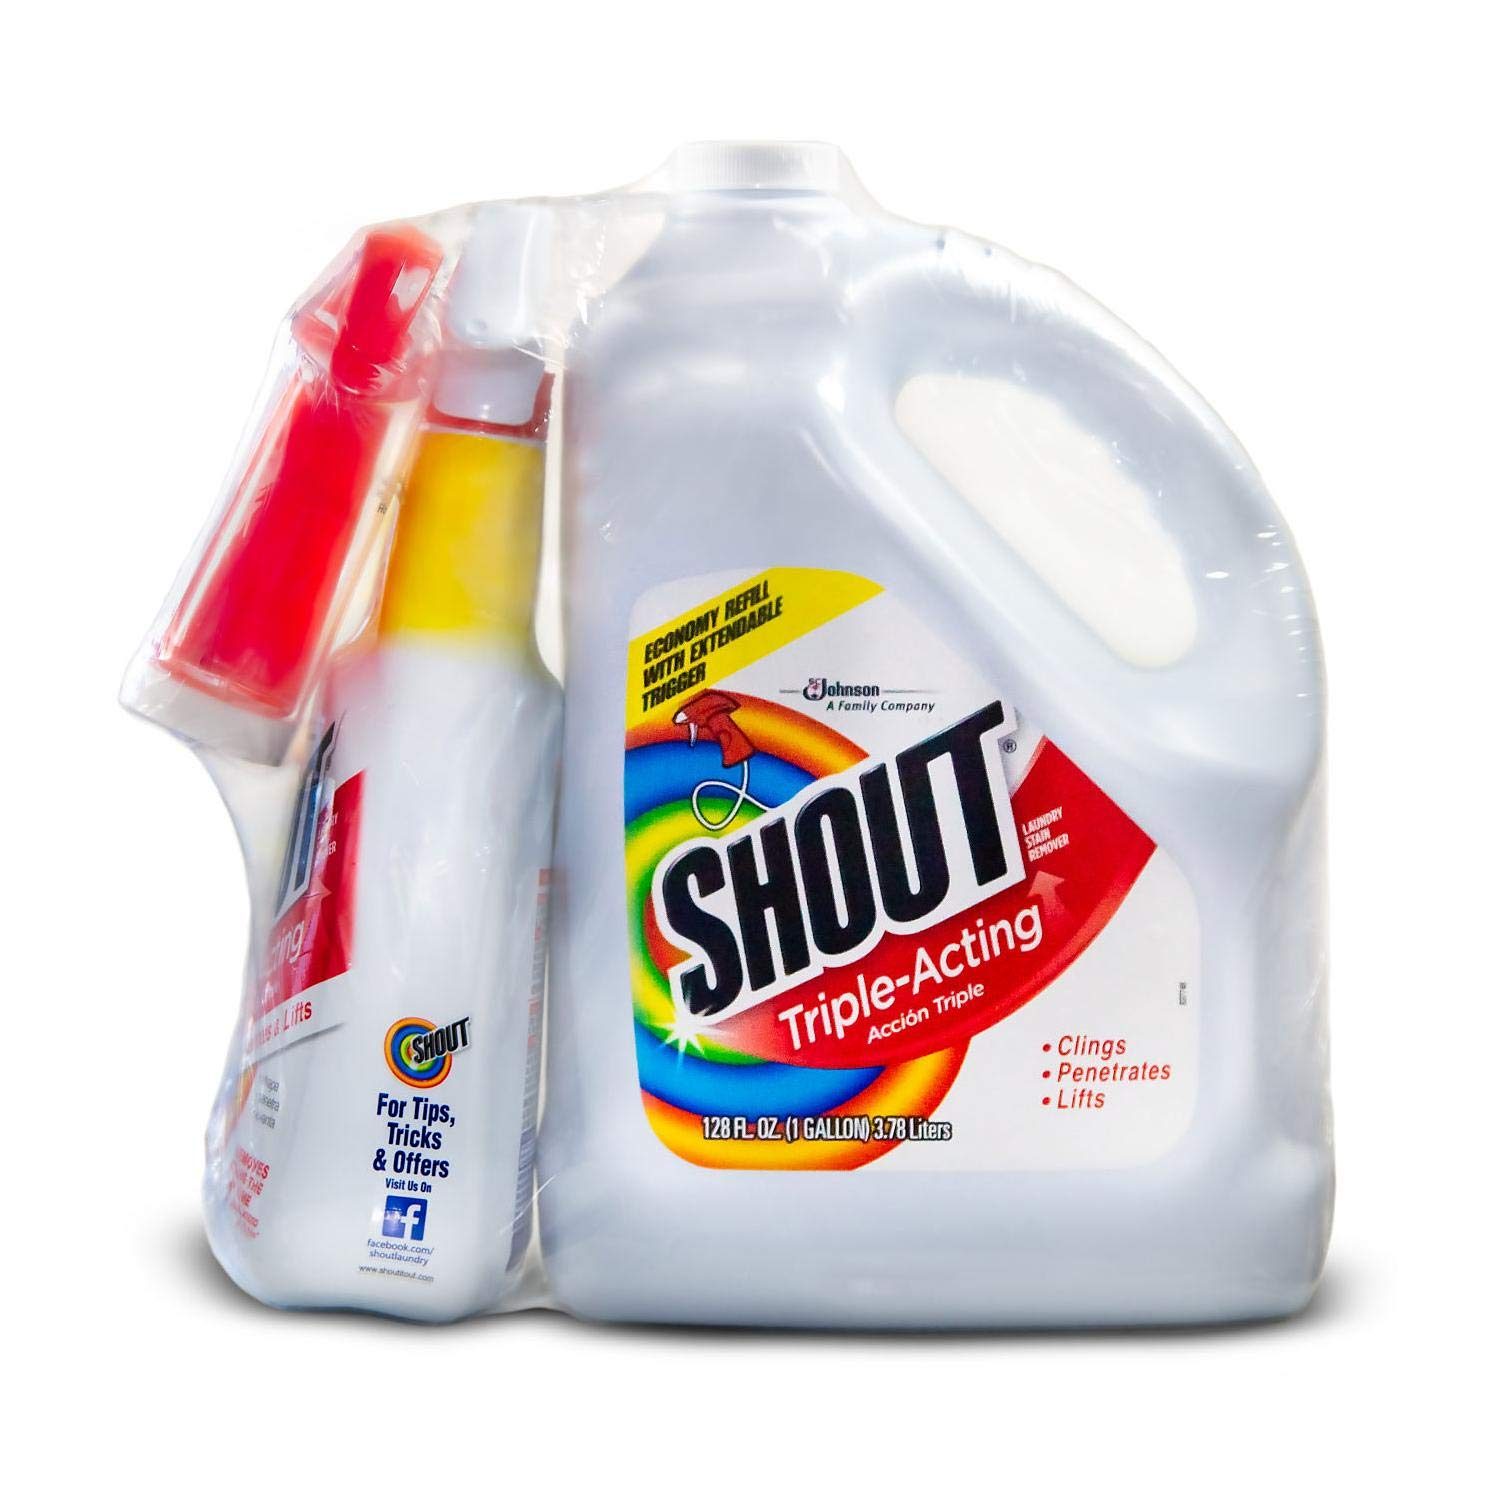 Shout Triple-Acting Liquid 1 Gallon Refill + 32 oz. Shout Trigger zaz (32 oz. Shout Trigger + 1 Gallon Refill +)